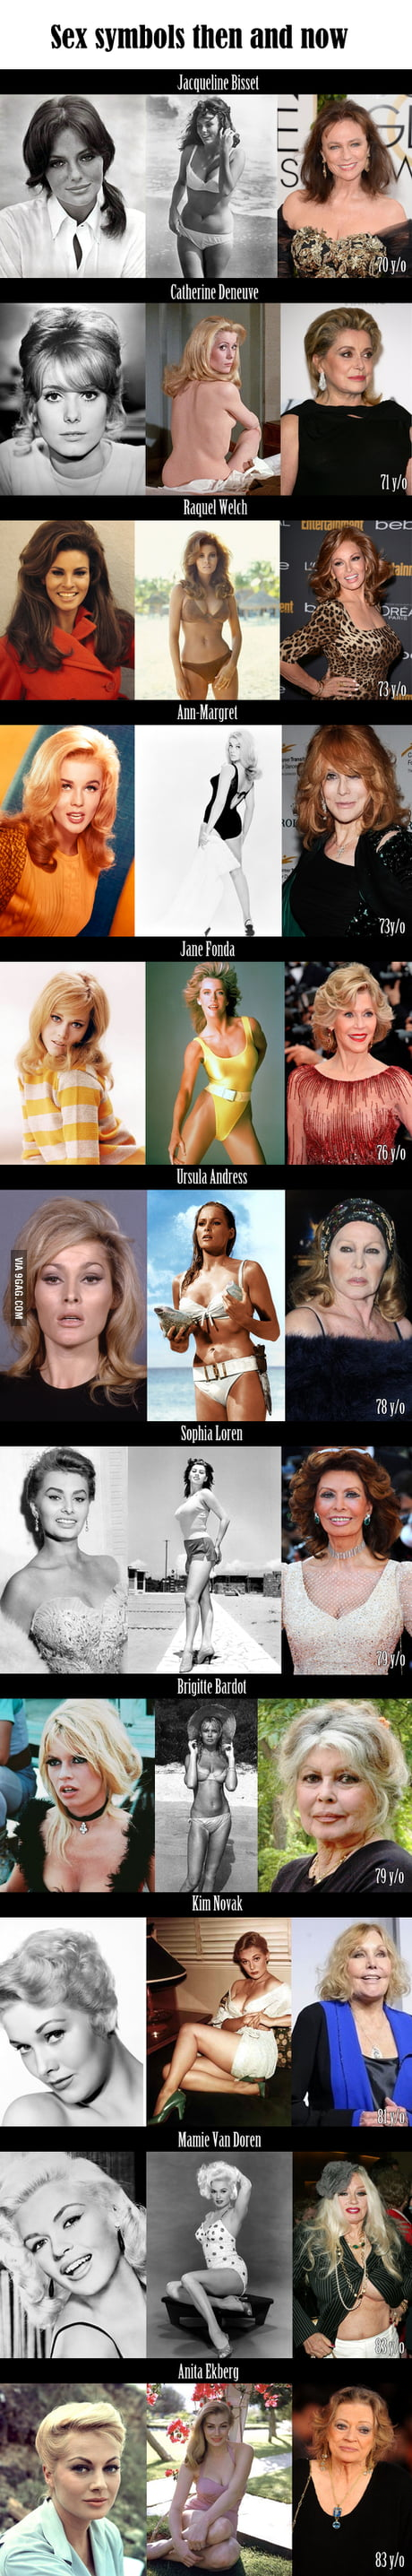 Sex symbols then and now (2014)